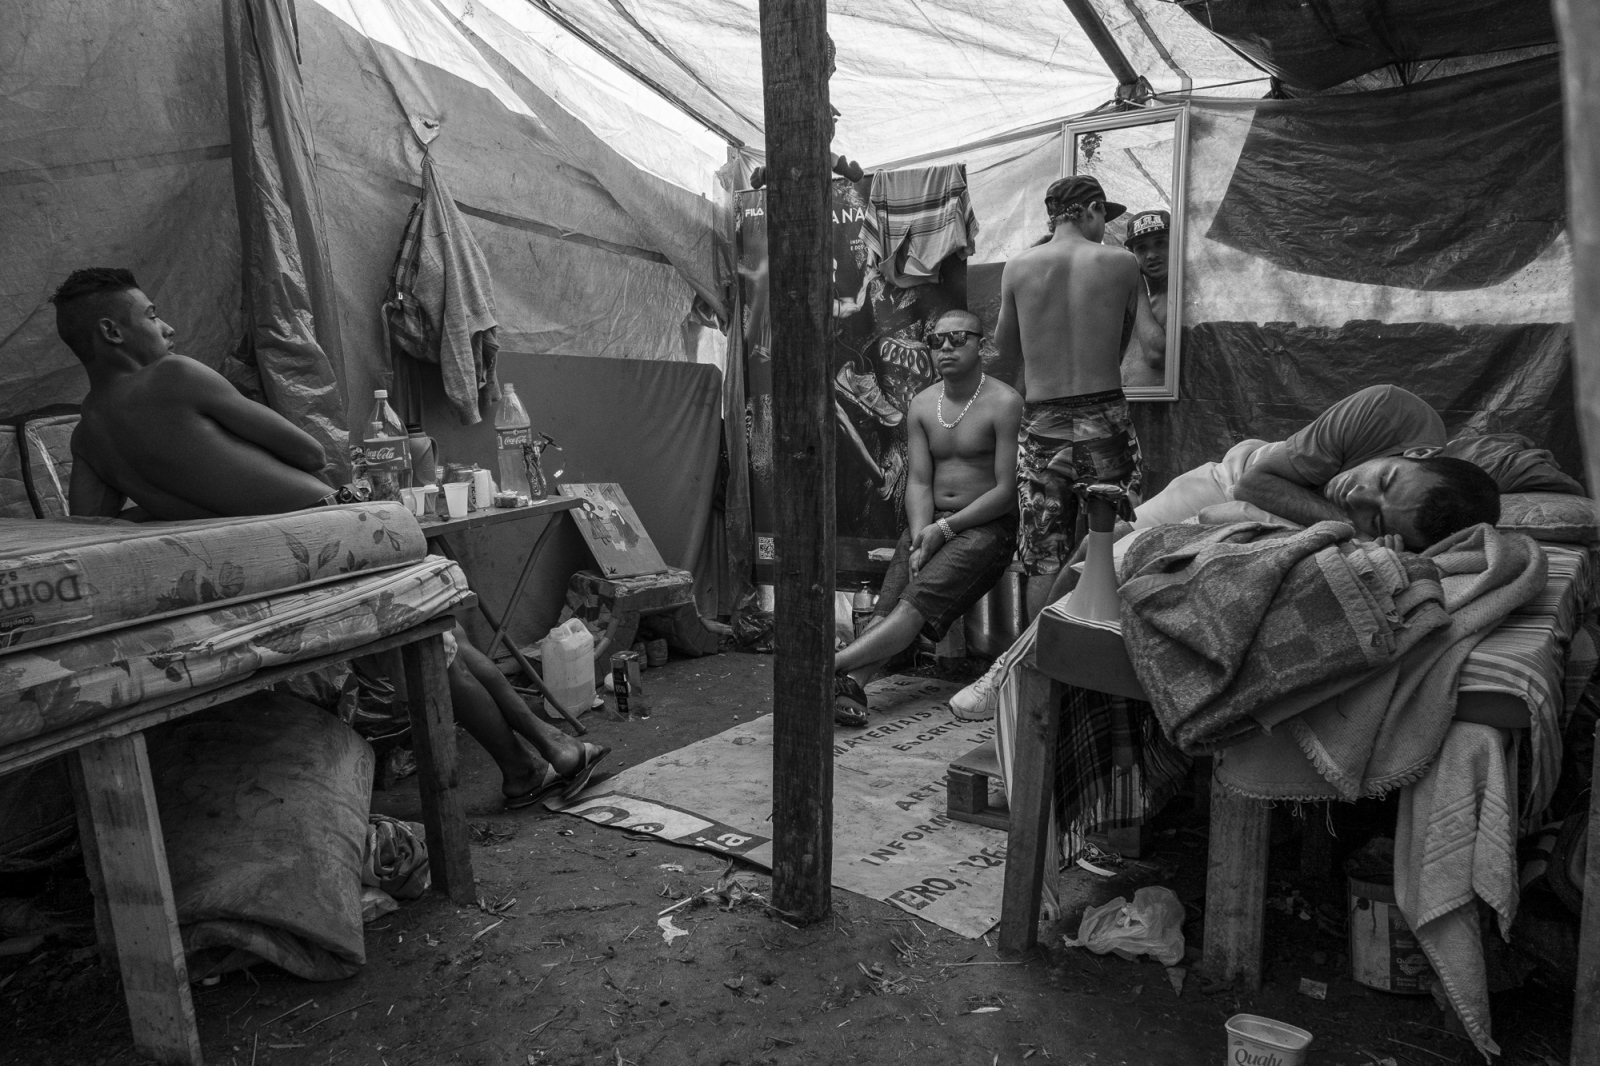 Teenagers hangout in one of the shelters in Copa do Povo (People's Cup) Camp in Itaquera, São Paulo. The Copa do Povo Camp, is just a few miles from the Arena Corinthians and has 5,000 homeless workers and their families occupied area of fifteen acres. They are homeless after rents skyrocketed because of the World Cup.